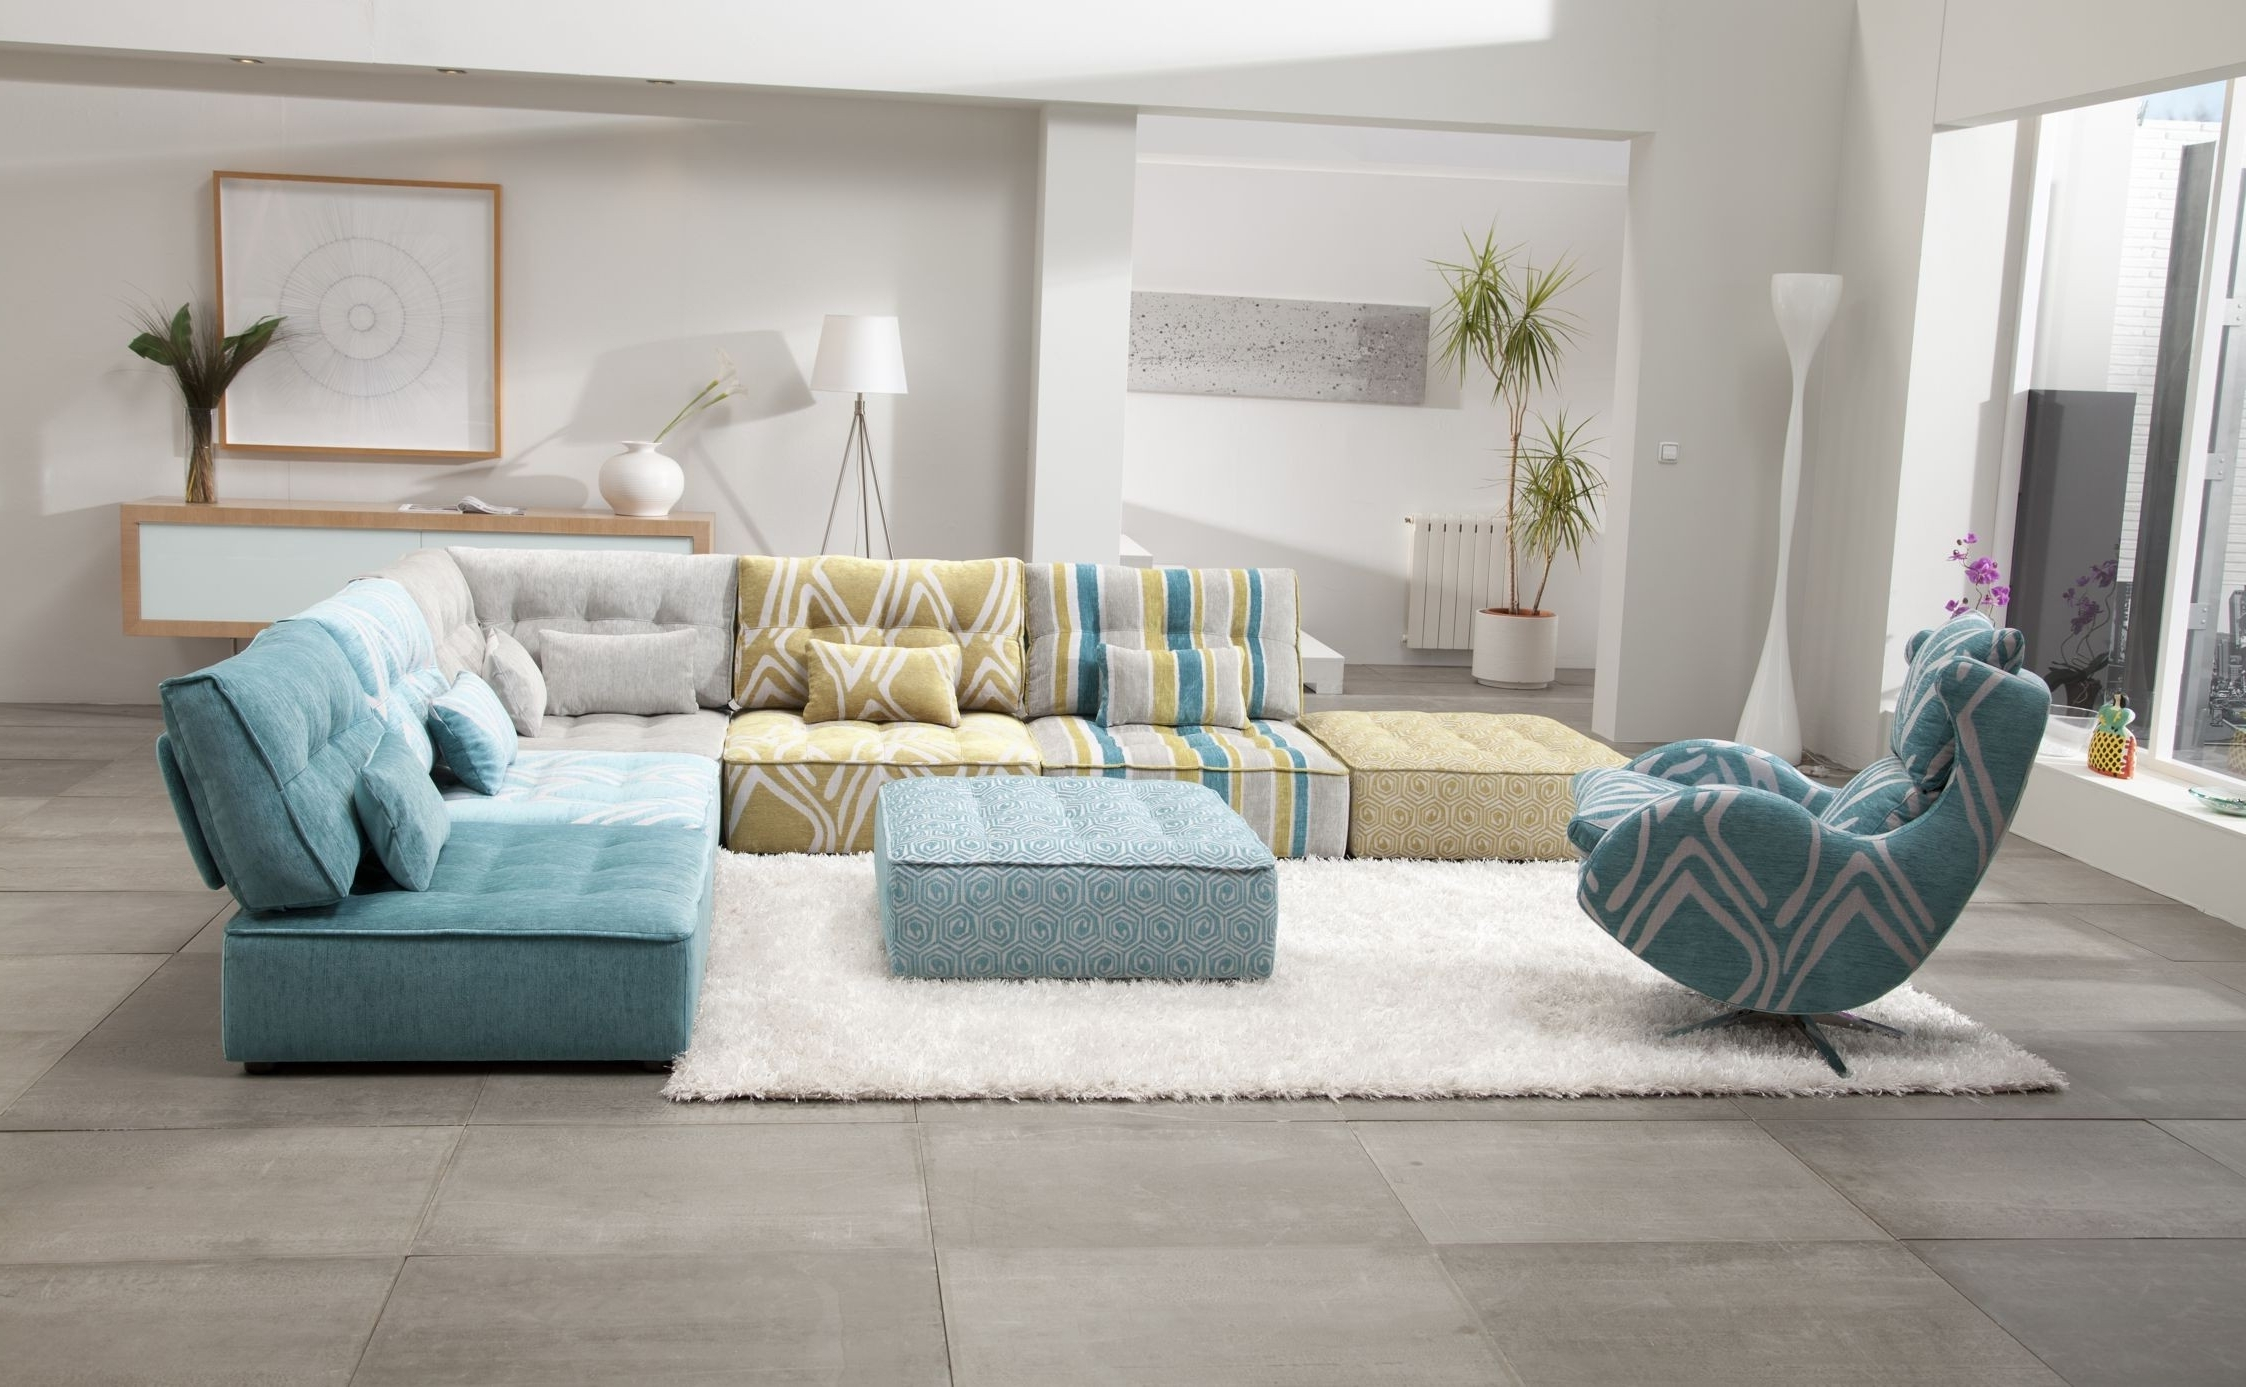 2019 Sectional Sofas From Europe Throughout Arianne Modern Modular Sectional Sofa (View 2 of 20)